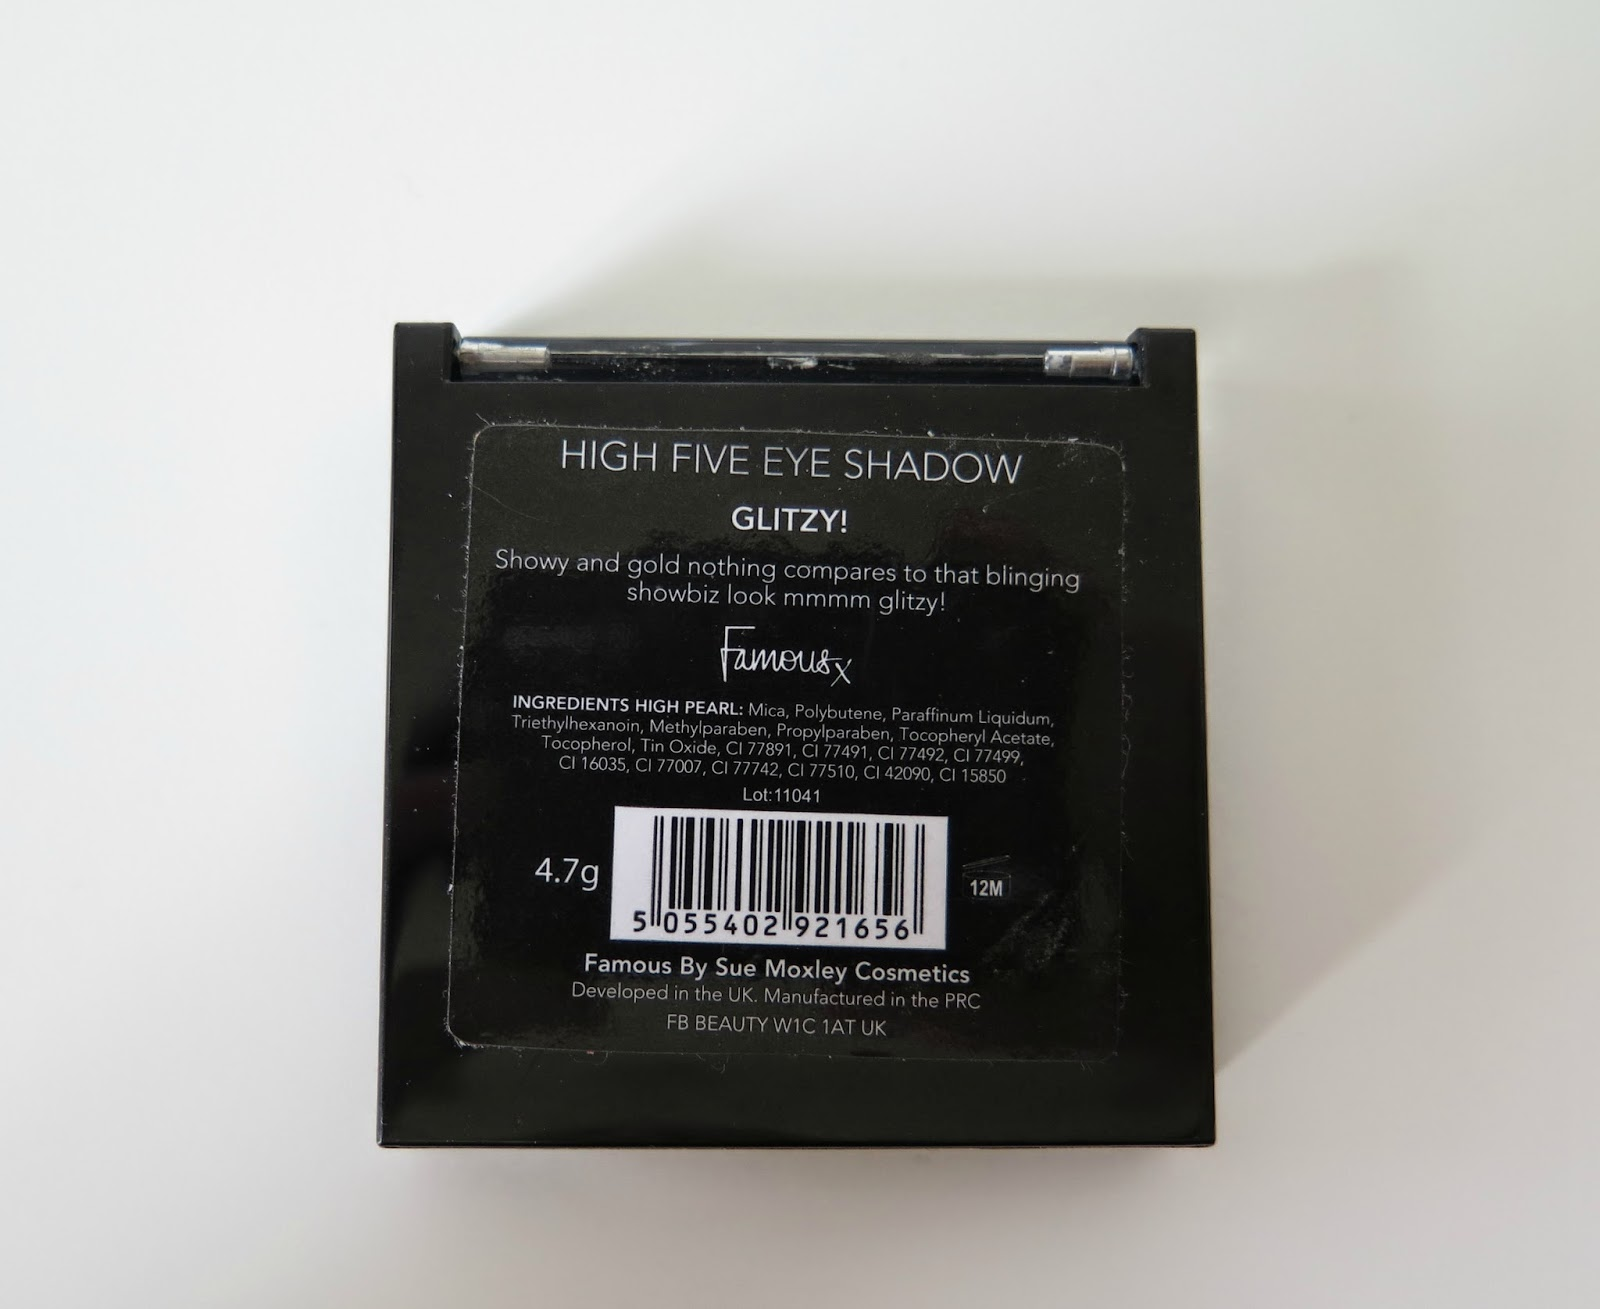 High Five eye shadow